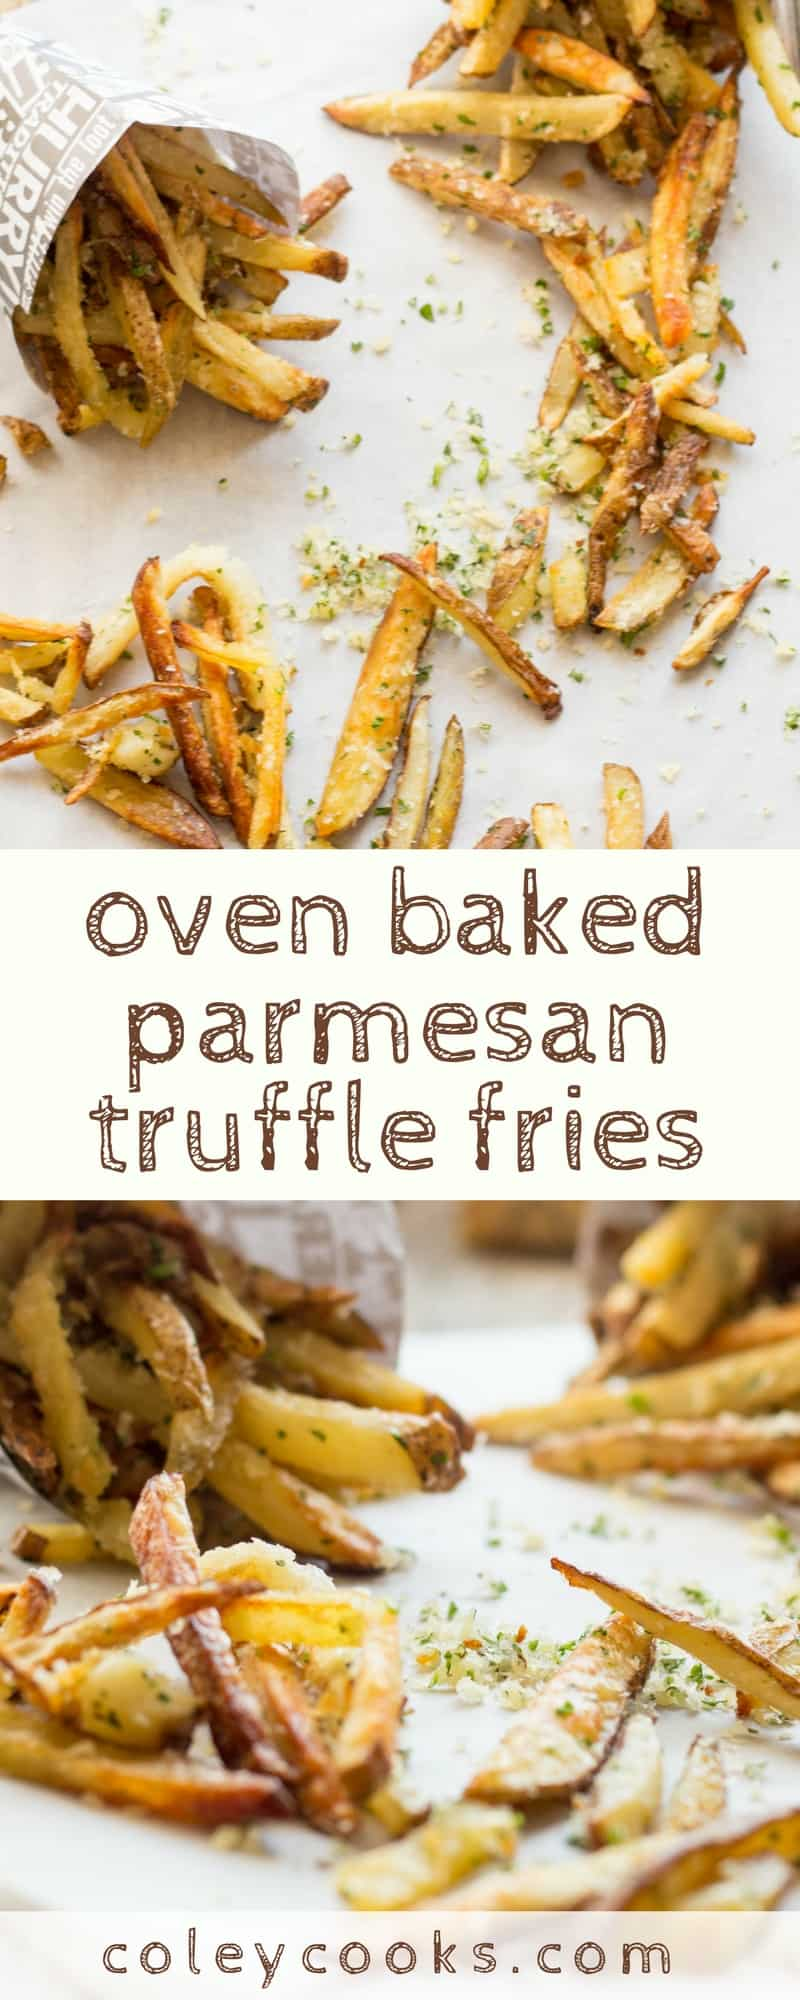 OVEN BAKED PARMESAN TRUFFLE FRIES | Tricks to getting the crispiest oven baked fries that get an extra boost of flavor from parmesan cheese and truffle oil. The best! | ColeyCooks.com